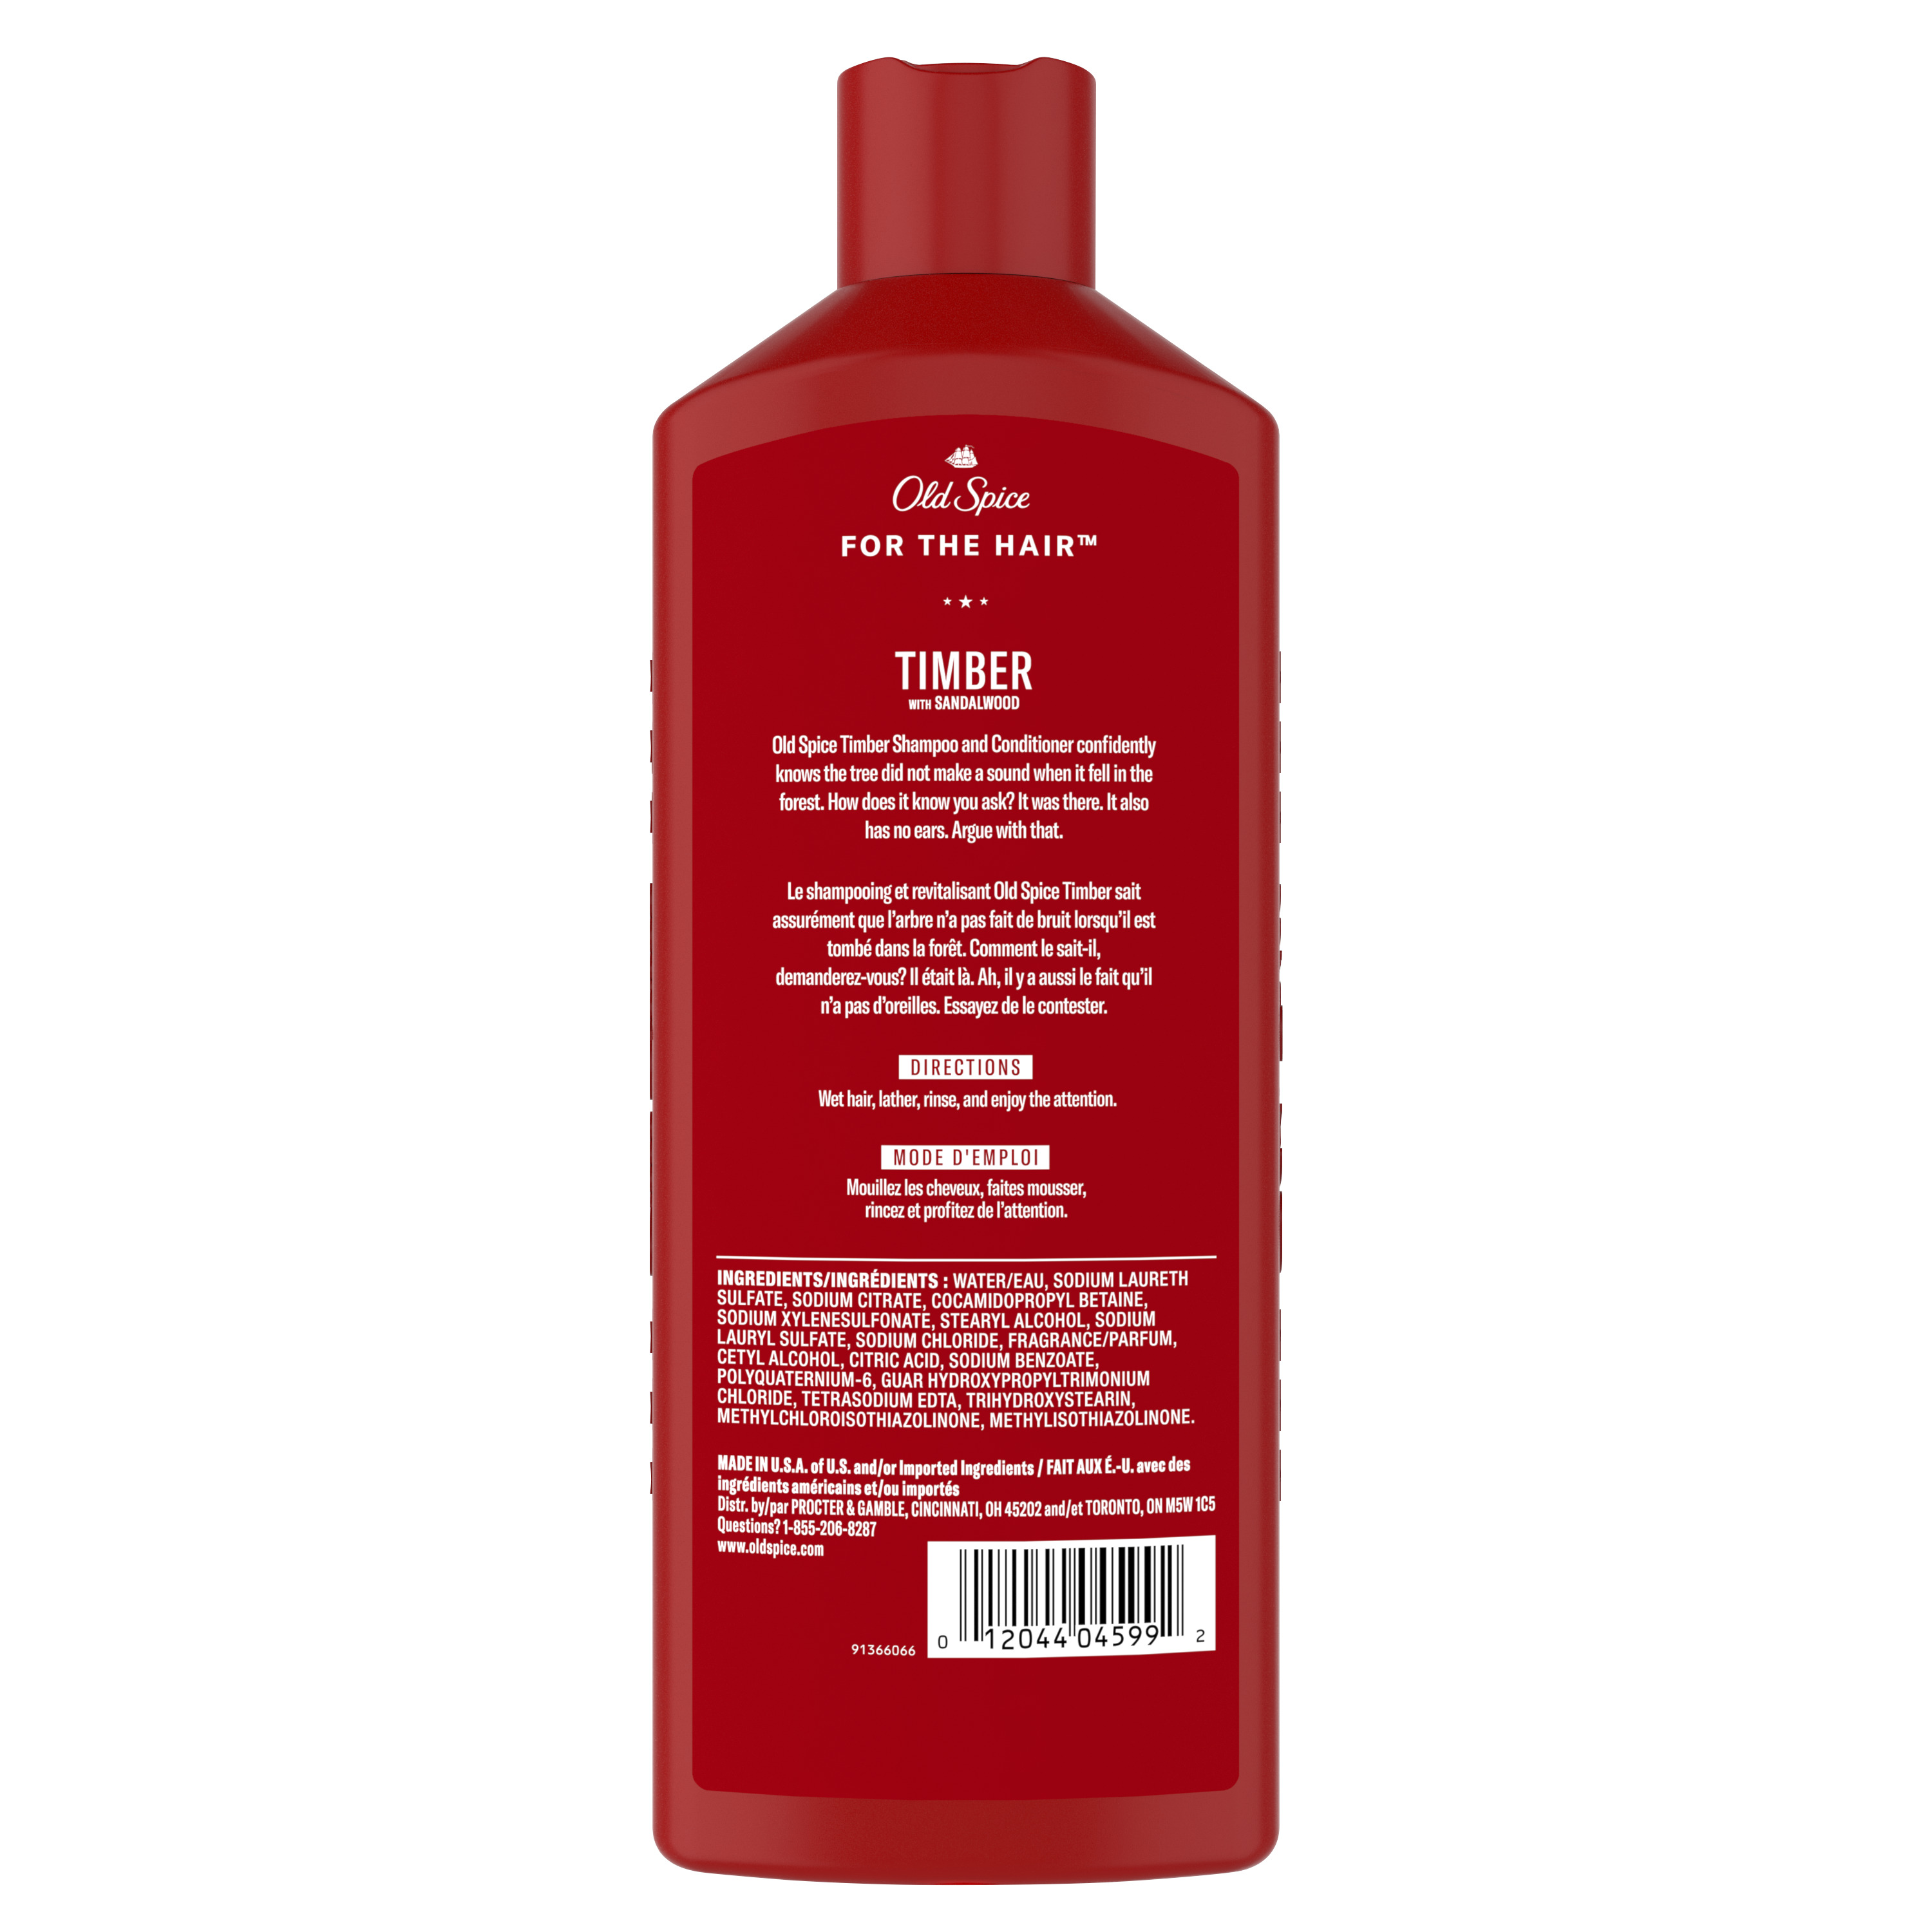 Timber 2in1 Shampoo and Conditioner